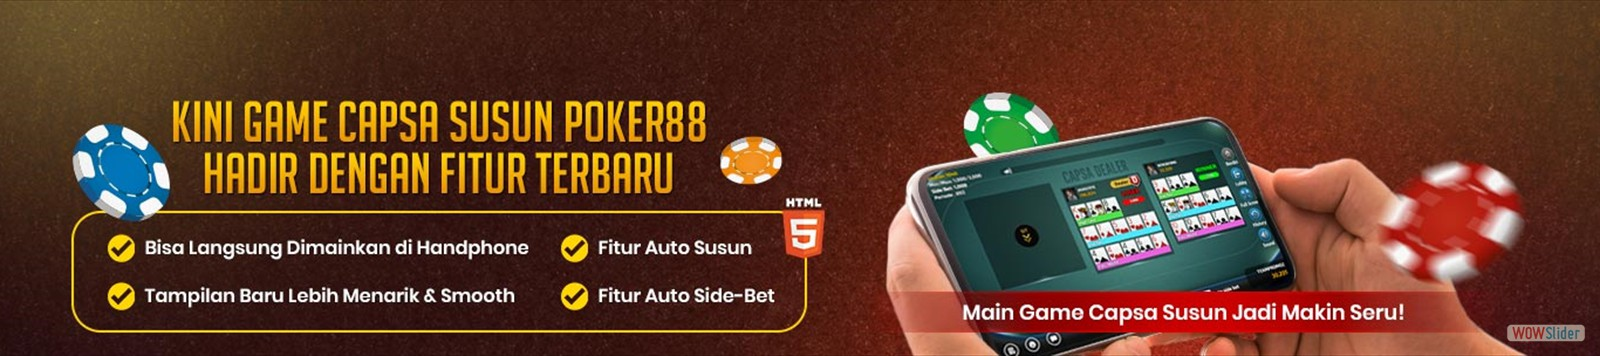 Poker88_CapsaSusunMobile_Slider